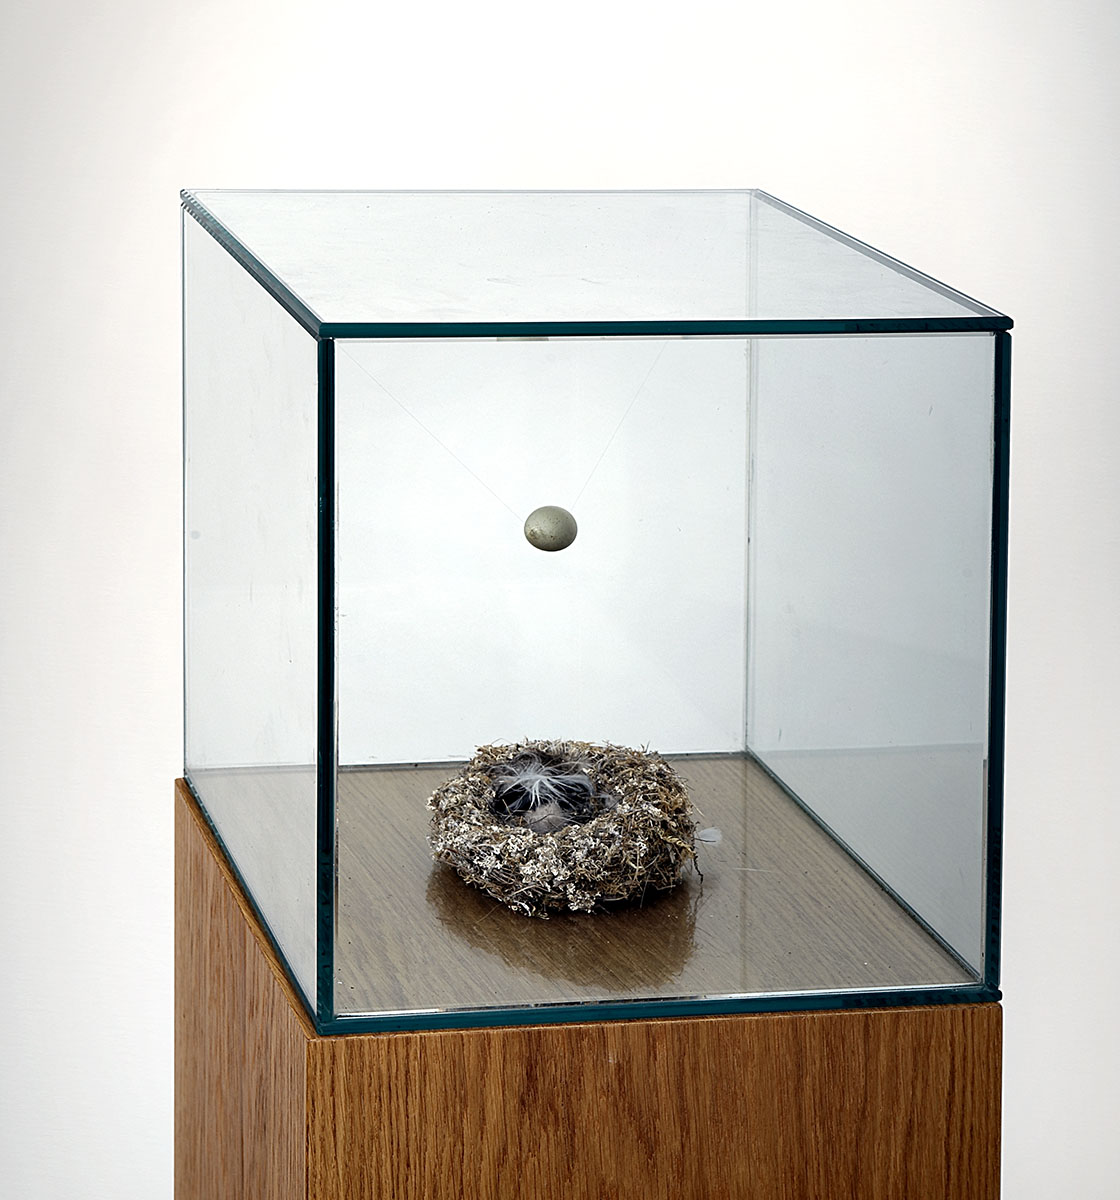 Bad Egg (Egg and Nest), 2009